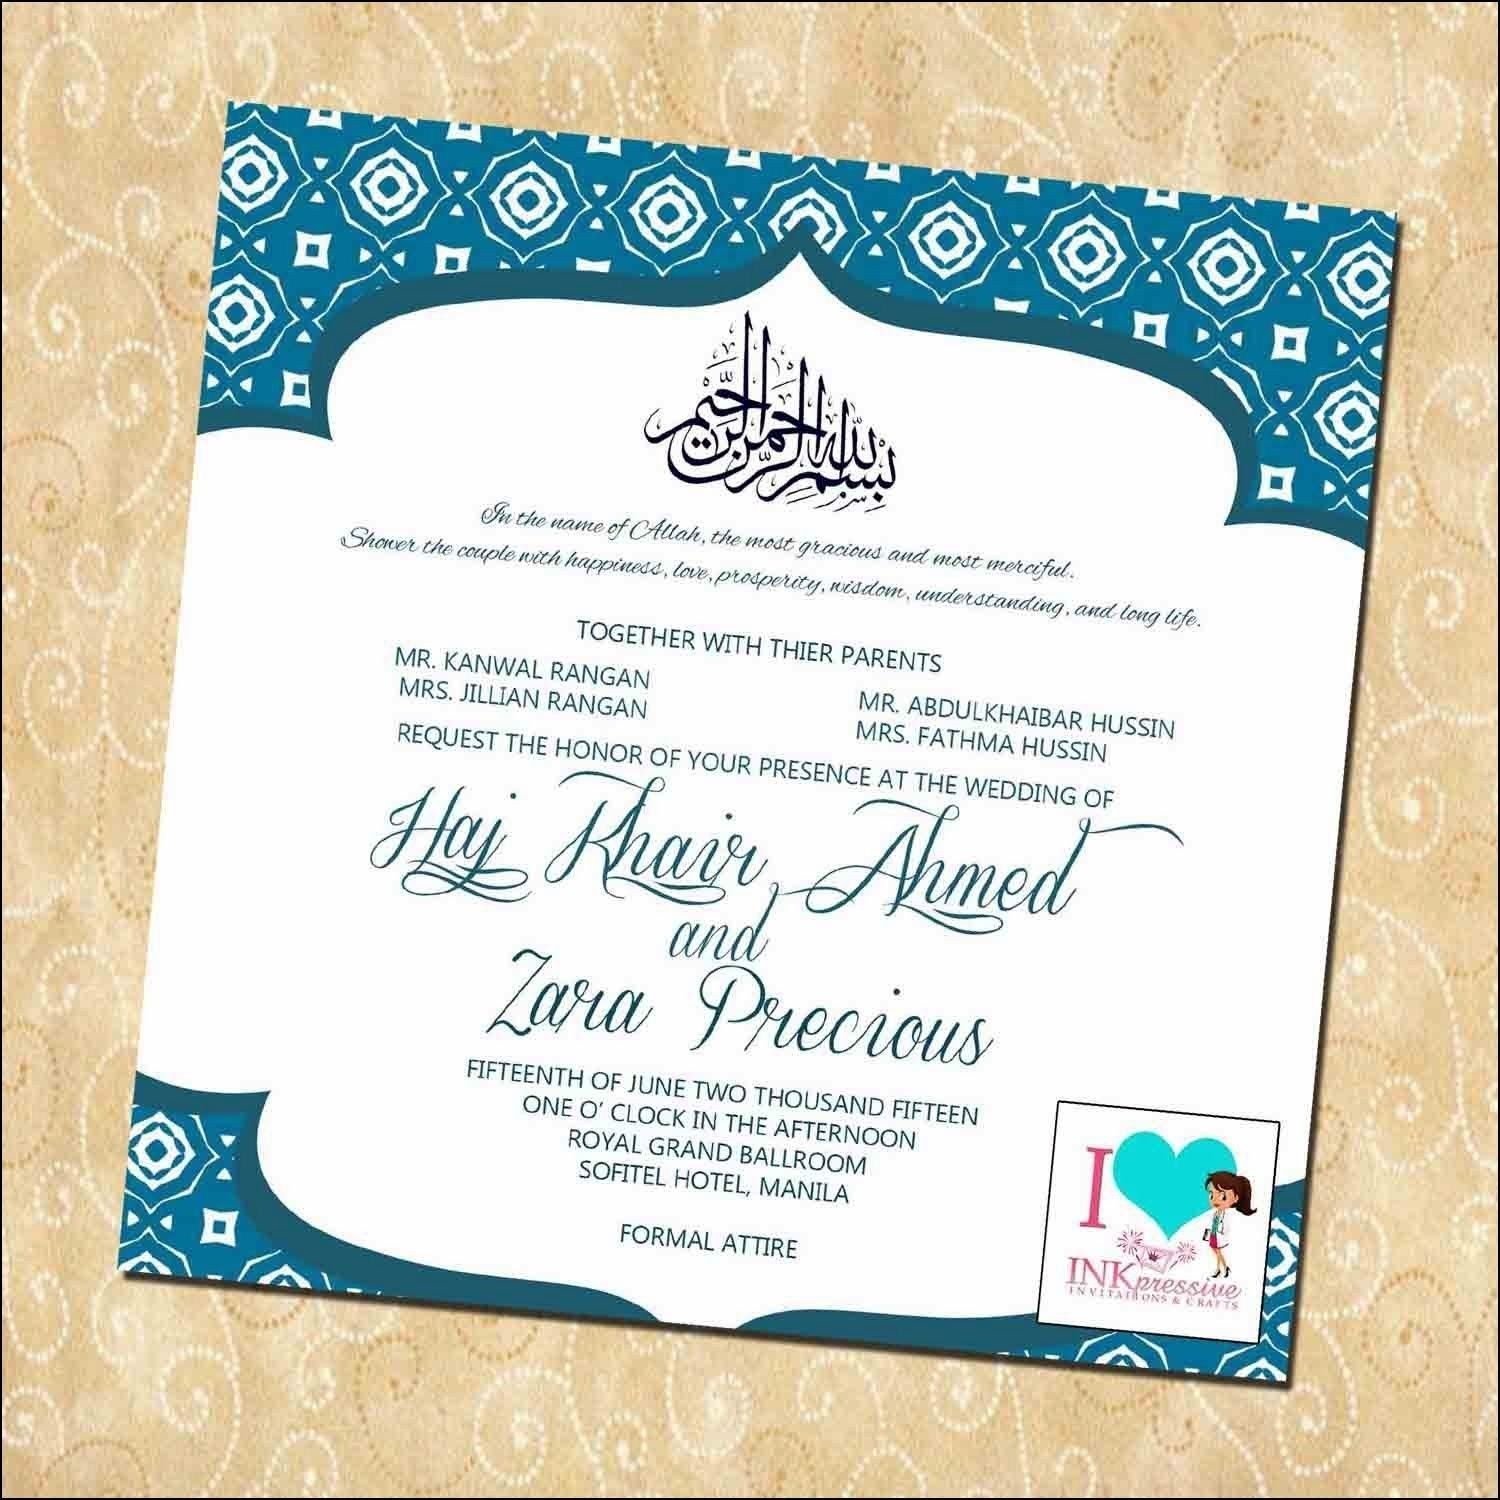 Islamic Wedding Invitations Muslim Wedding Invitations Wording Wedding Pinterest Muslim Wedding Cards Muslim Wedding Invitations Wedding Invitation Card Design